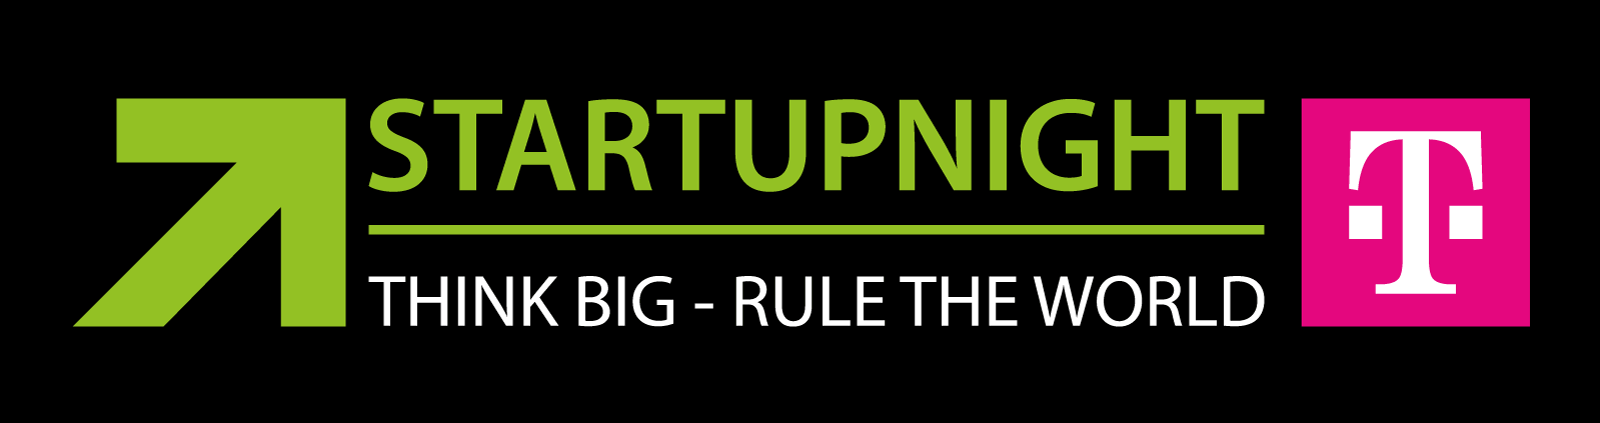 Startupnight Slogan Logo